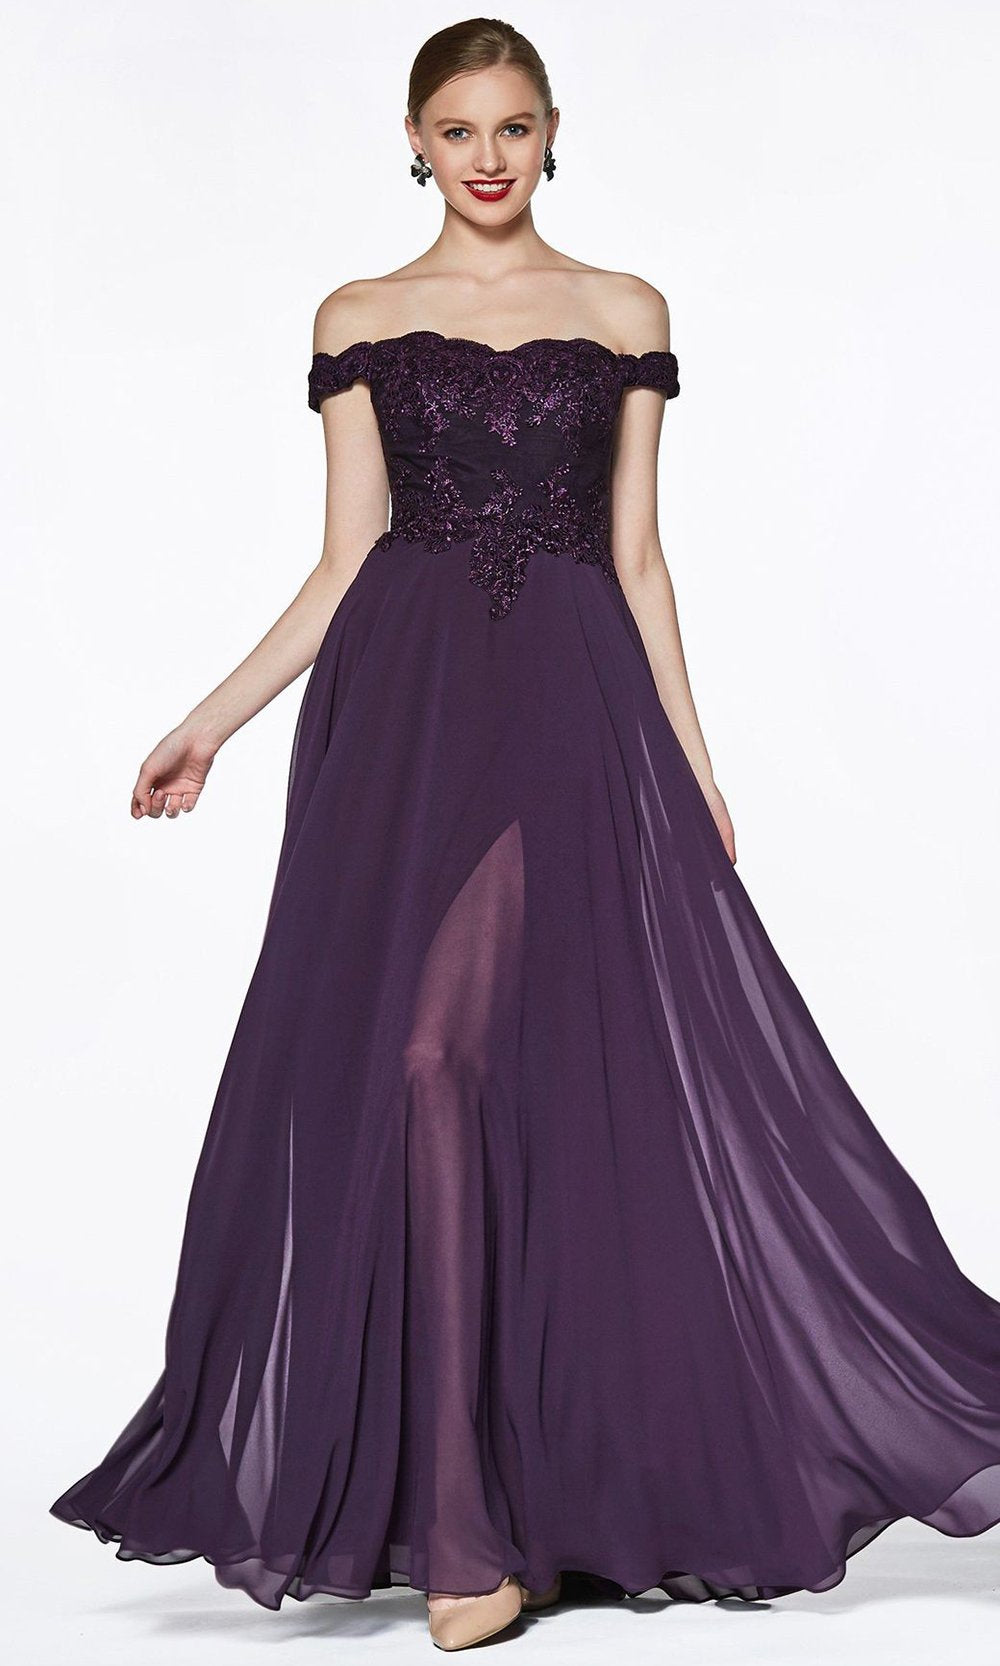 Cinderella Divine - 7258 Scallop Chiffon A-Line Gown In Purple and Black